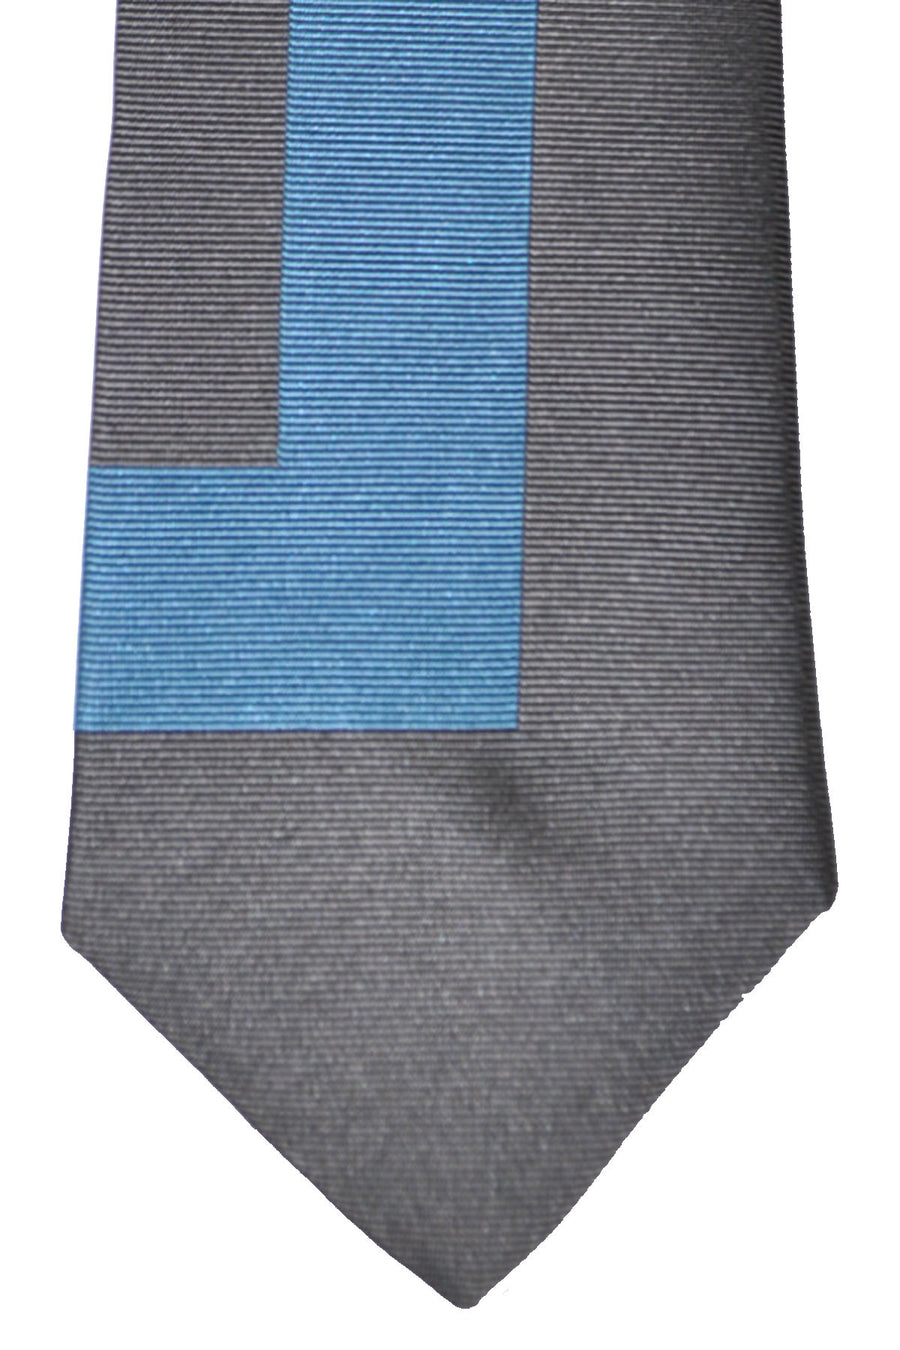 Gene Meyer Tie Gray Blue Design